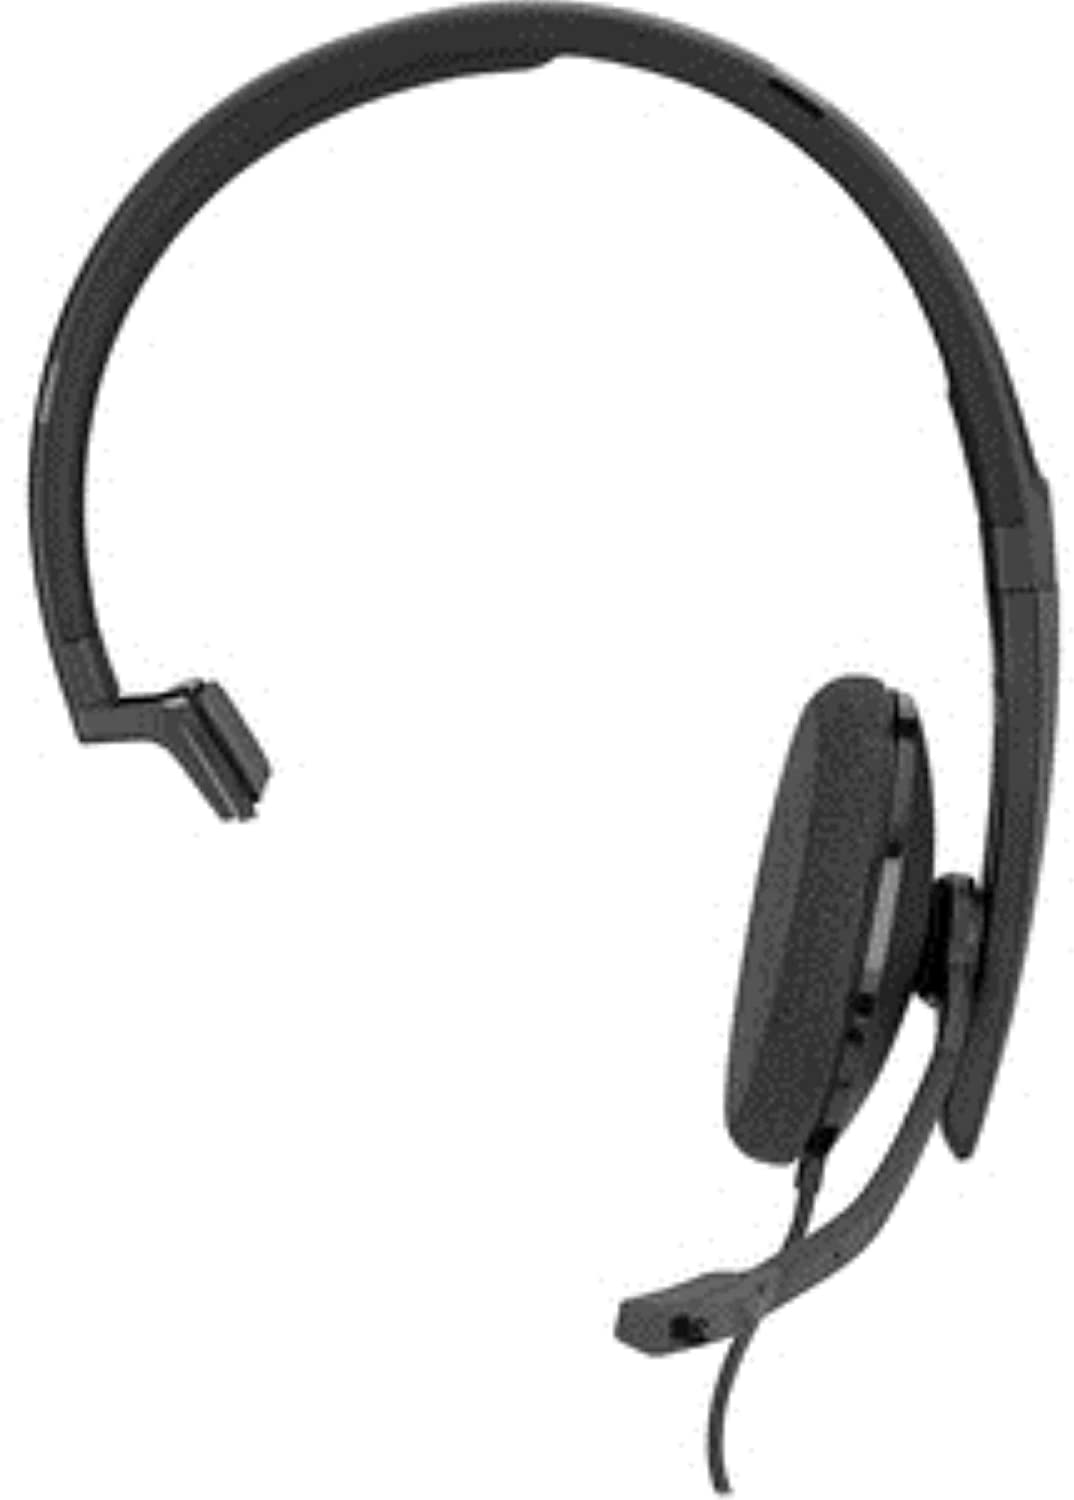 Sennheiser SC 130 USB-C (508353) - Single- Sided (Monaural) Headset for Business Professionals | with HD Stereo Sound, Noise-Canceling Microphone, & USB-C Connector (Black)